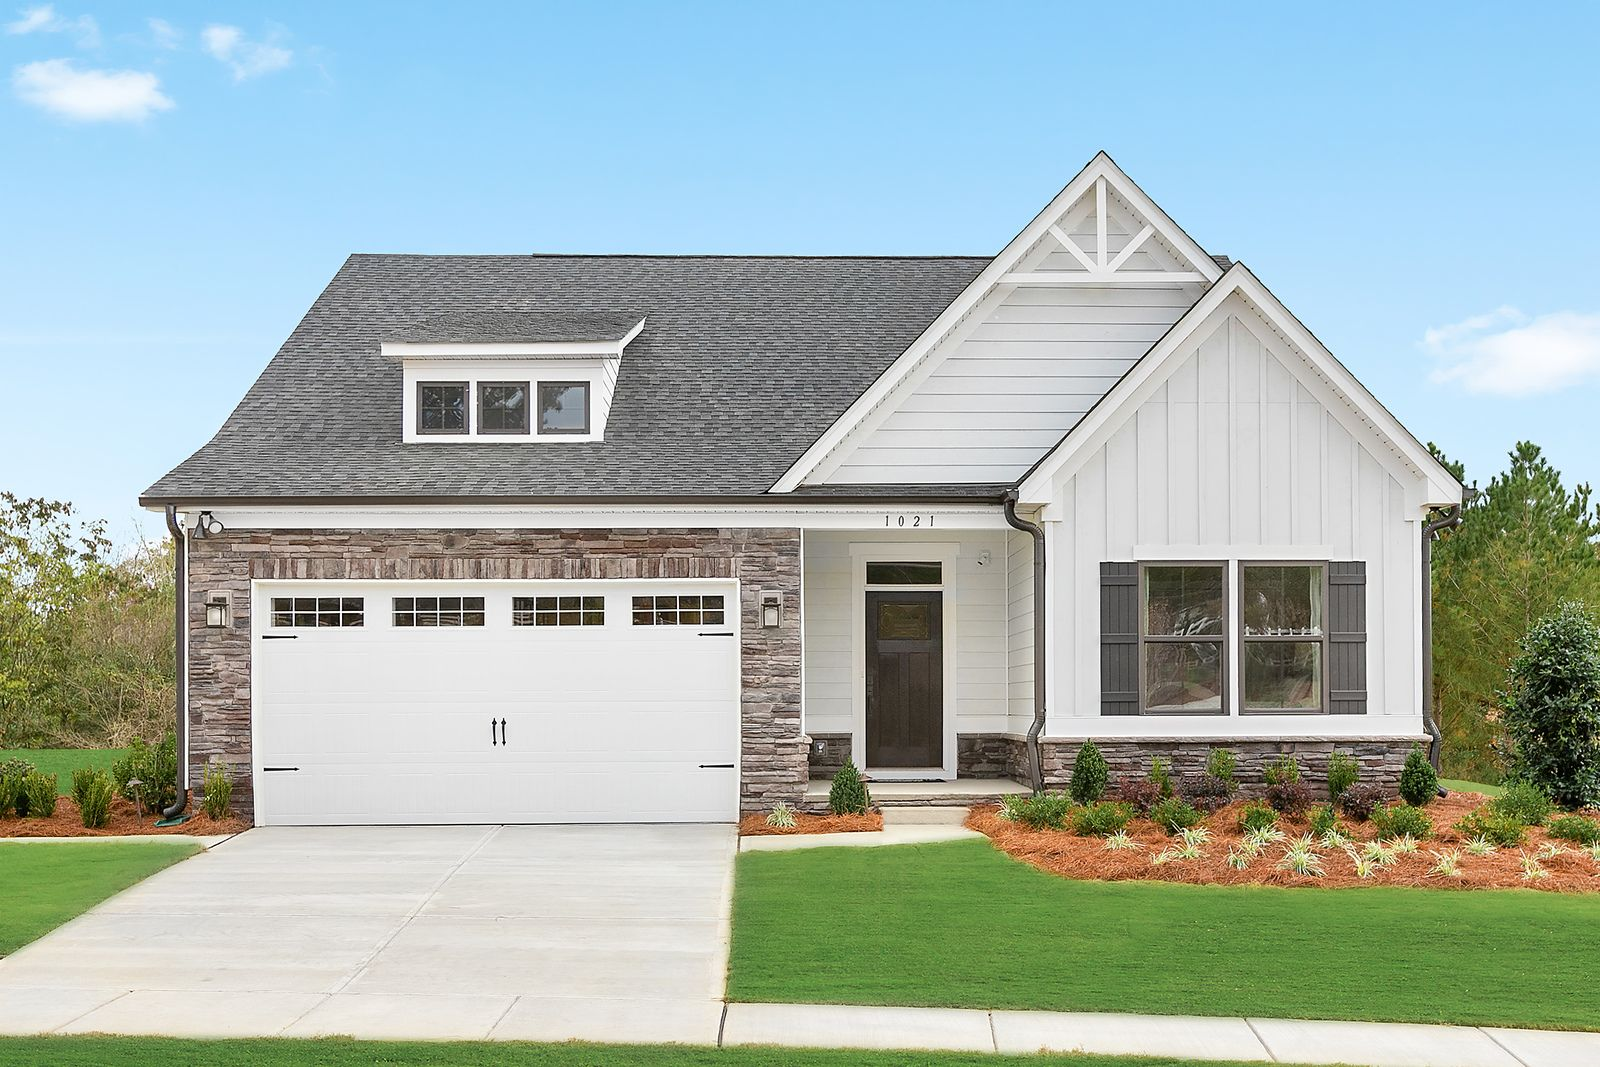 WELCOME HOME TO GLENDALE VILLAGE:New constructionhomes in Jackson Schools, just 1 mile to Belden and close to I-77—from low $300s.Click here to schedule your visit today!